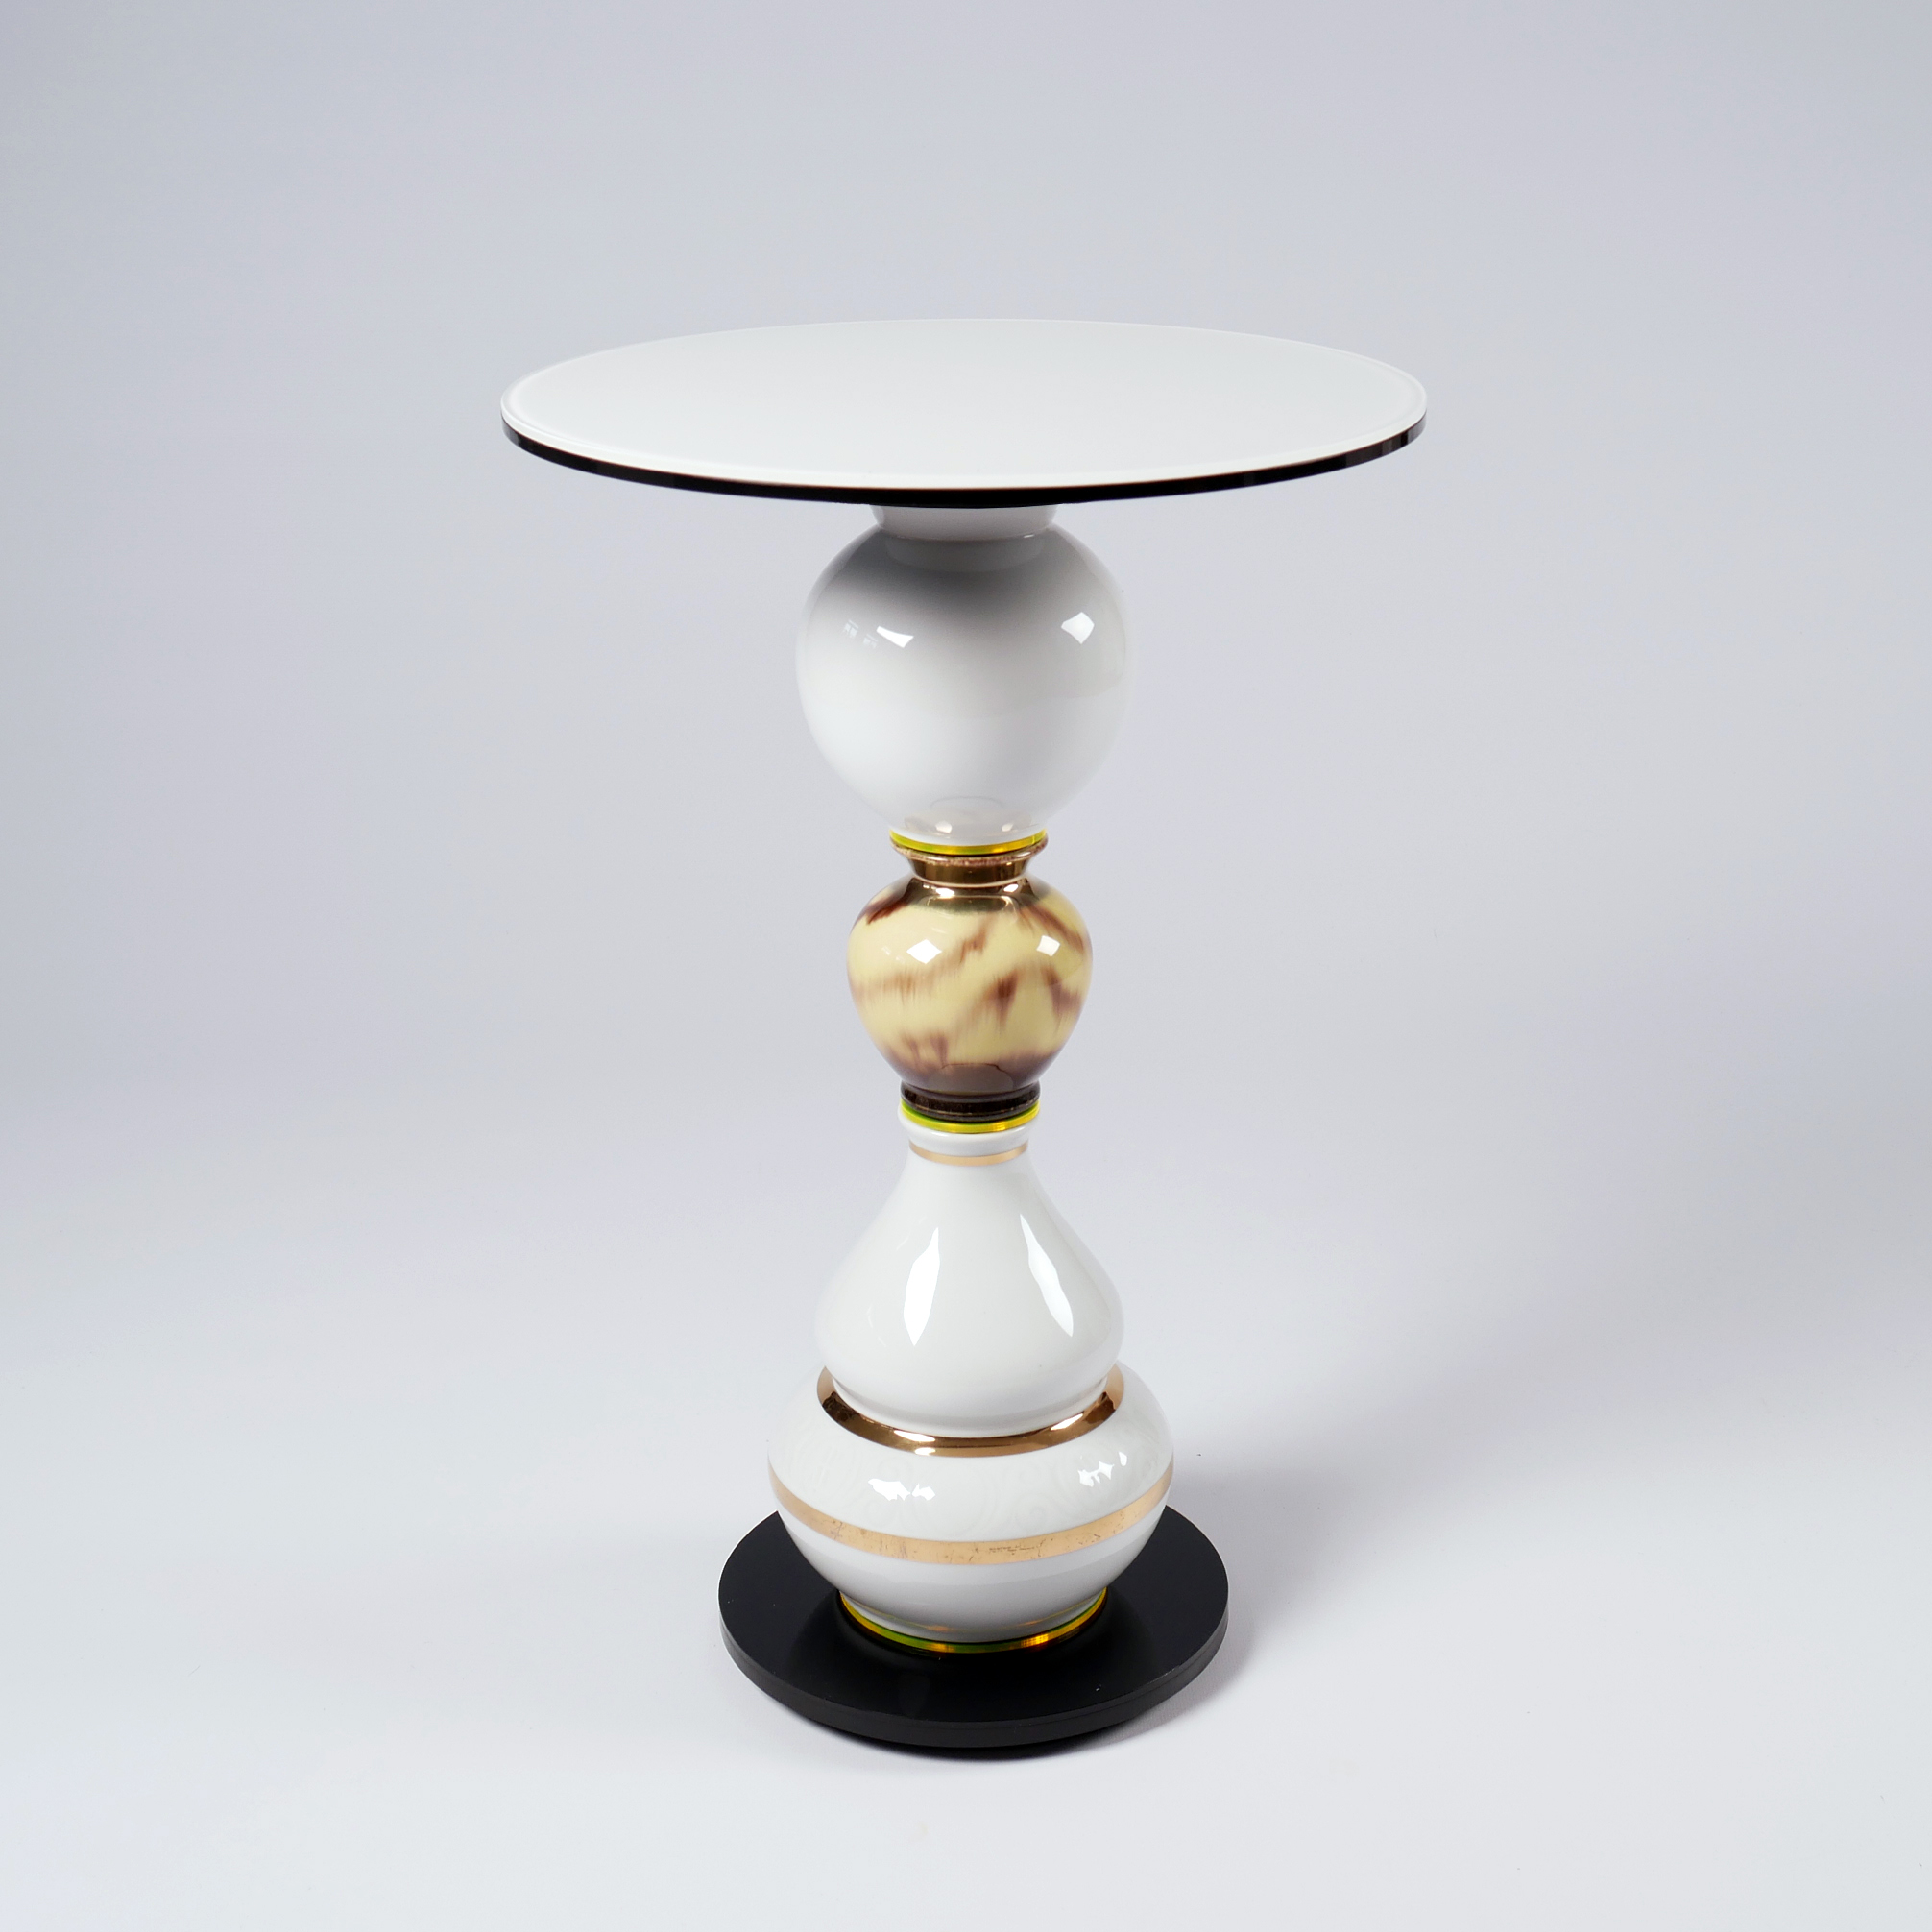 """Sommers Song - <p>Timeless """"one of a kind"""" side table made of vintage vases and new plexiglass and glass components. Stable construction made of metal and flexible components inside. Additional wight in the base.</p>  